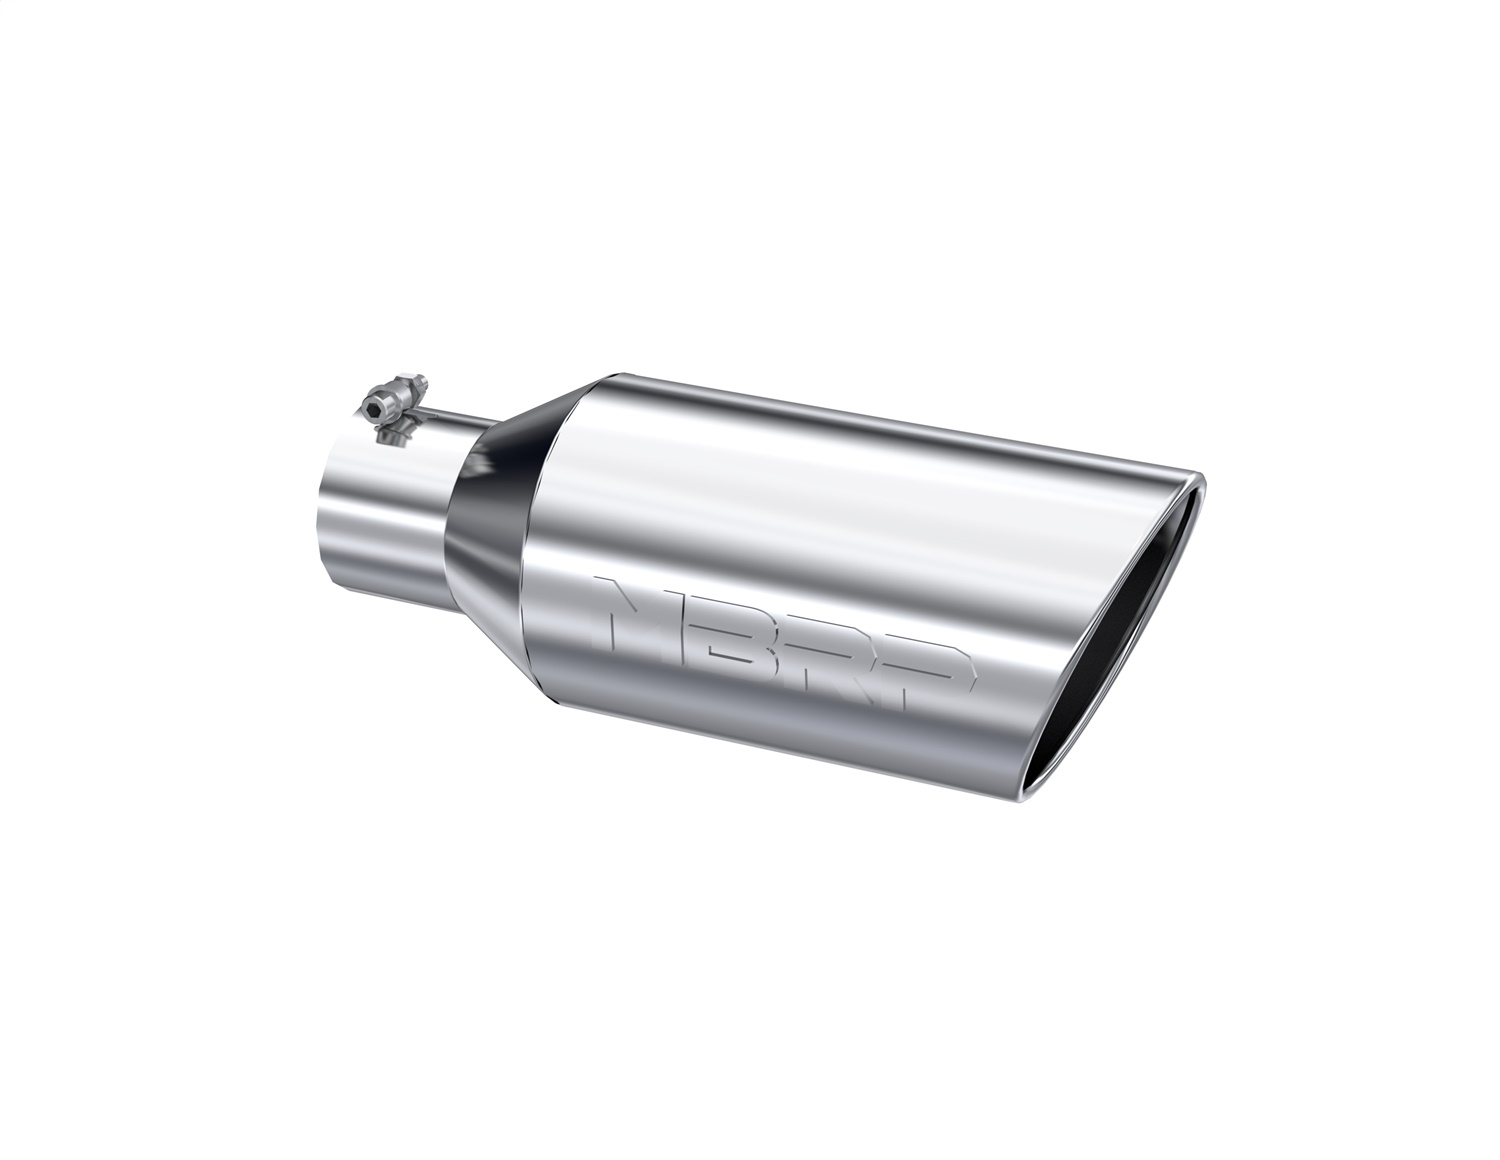 MBRP Exhaust Exhaust Tail Pipe Tip (T5126)